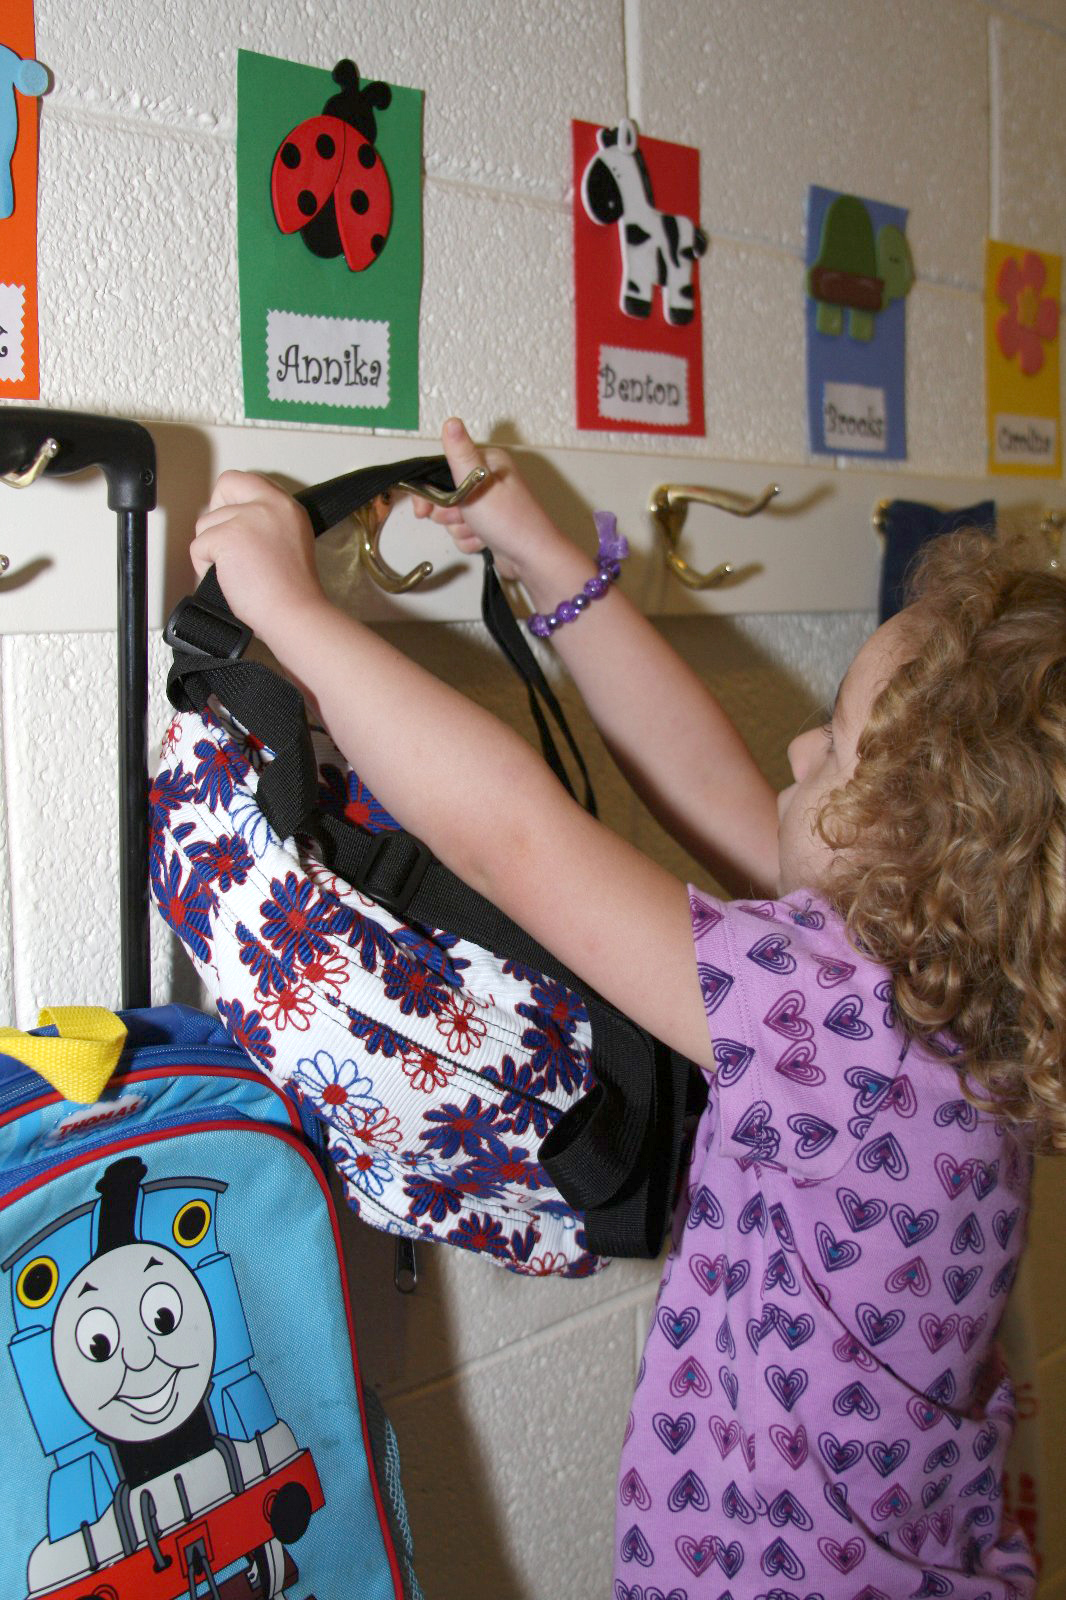 A student hangs her bookbag on a peg outside her classroom door.